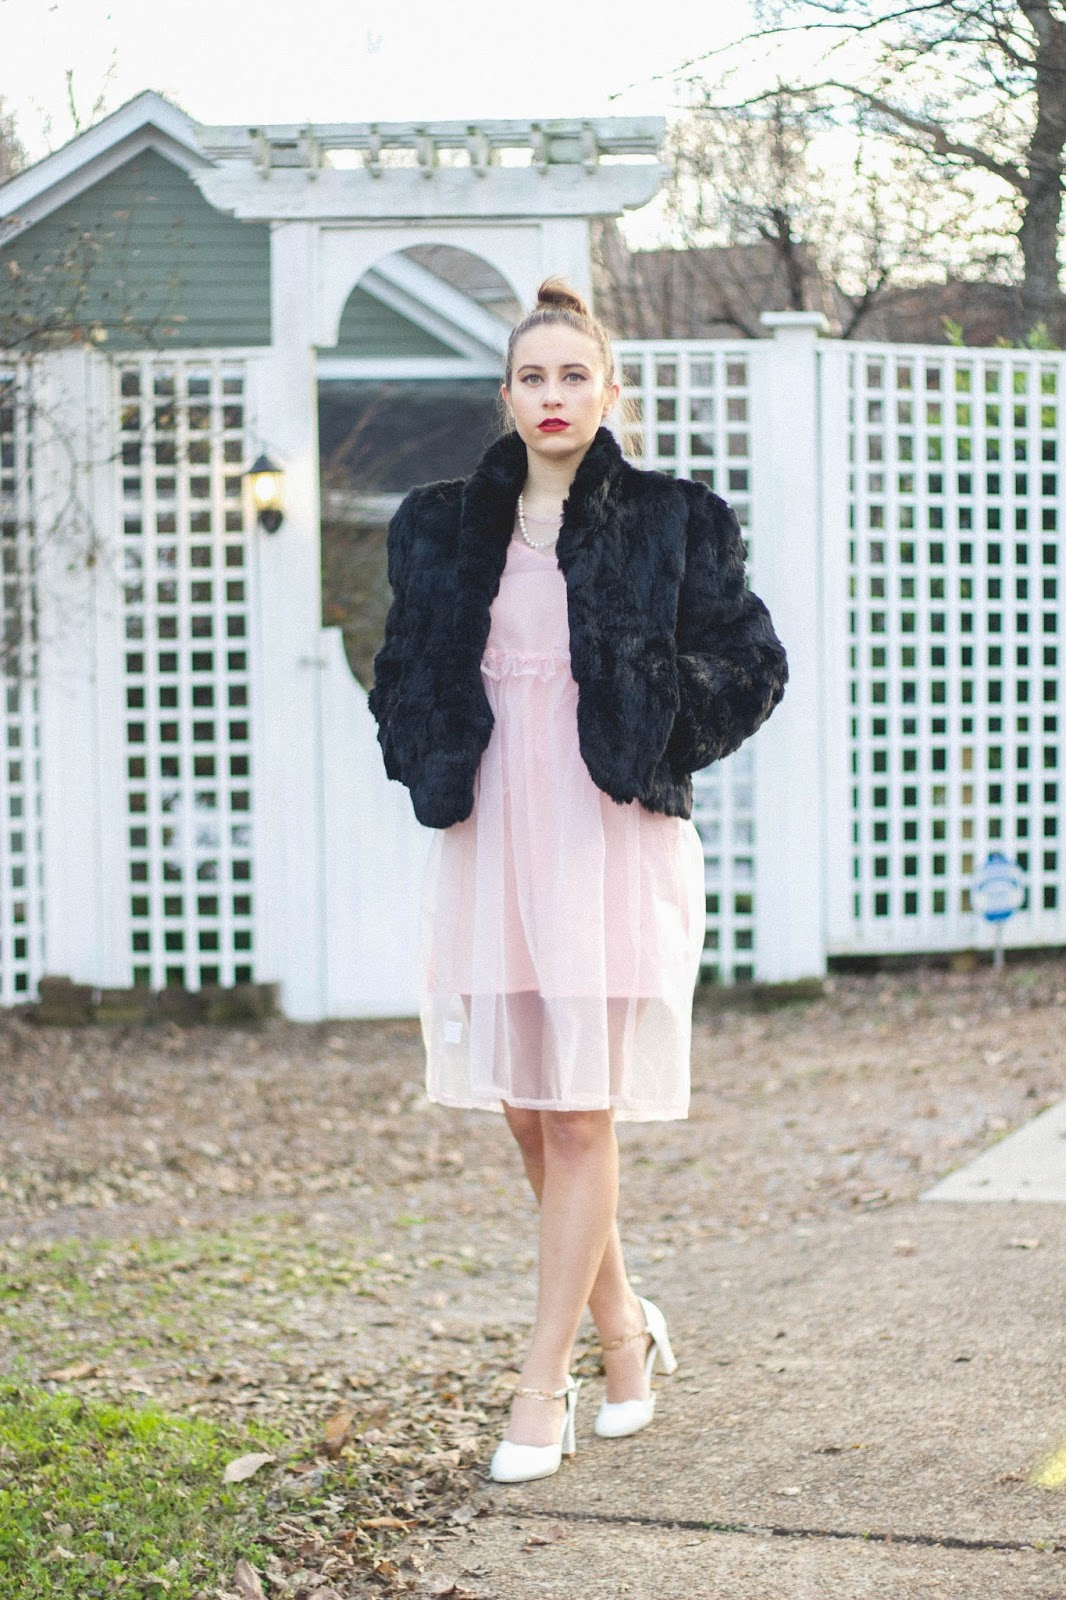 vintage, vintage style, vintage outfit, the white pepper dress, pink chiffon dress, fur coat, pearls, hollywood regency, 60's style, whimsical, dreamy outfit, outfit, classic style, old hollywood outfit, glamorous, holiday party outfit, girly things , dreamer,